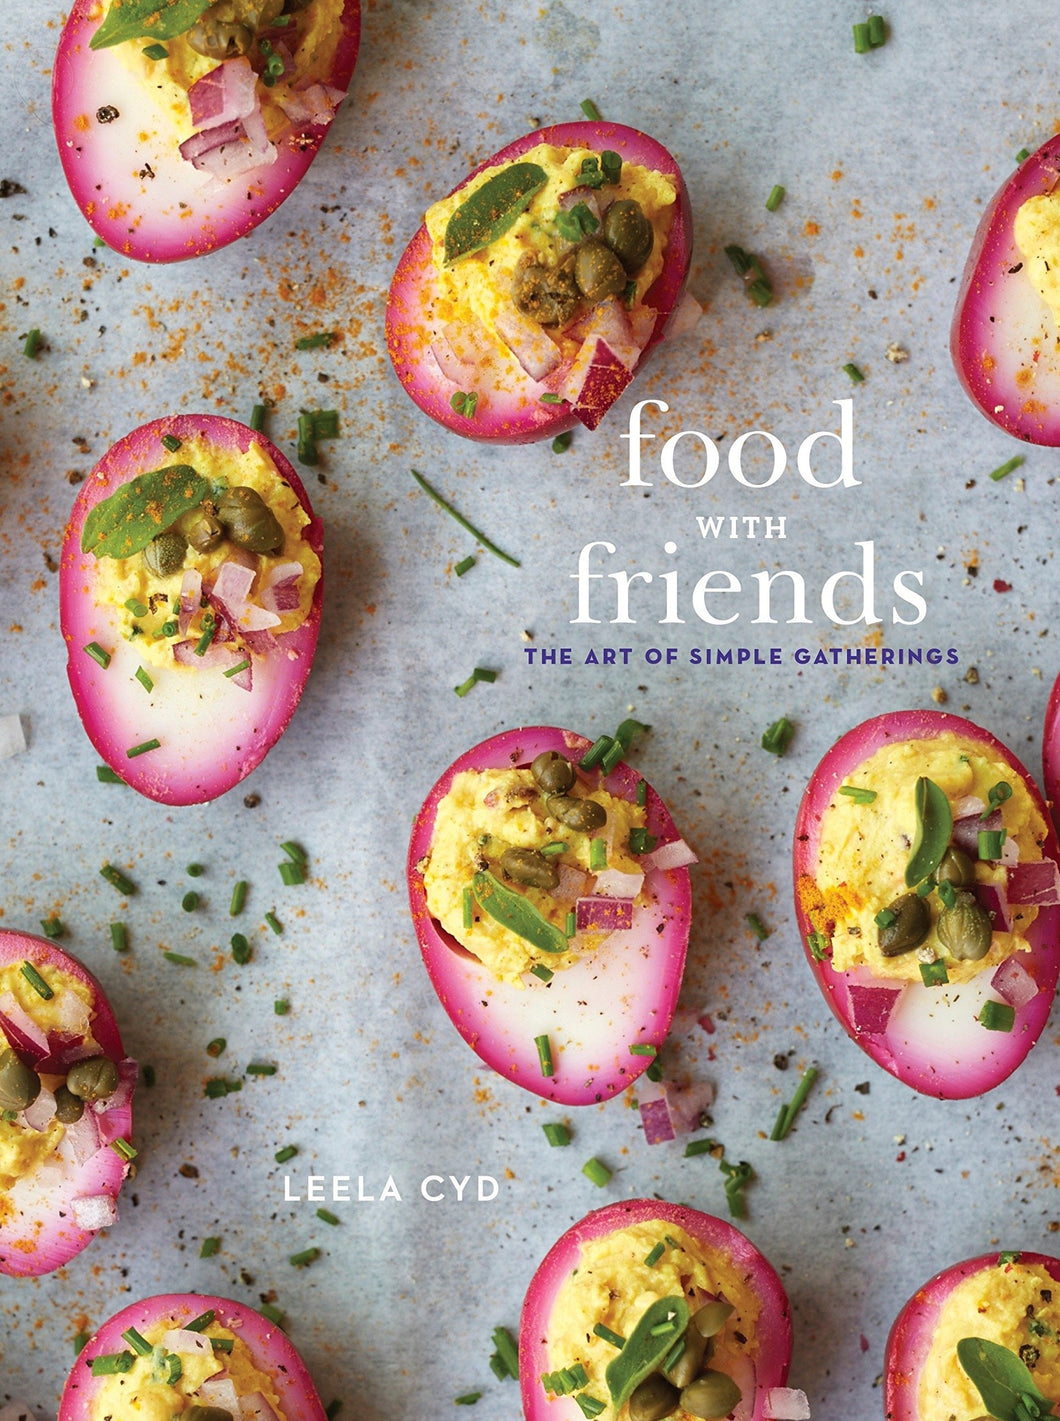 Food with Friends Cookbook